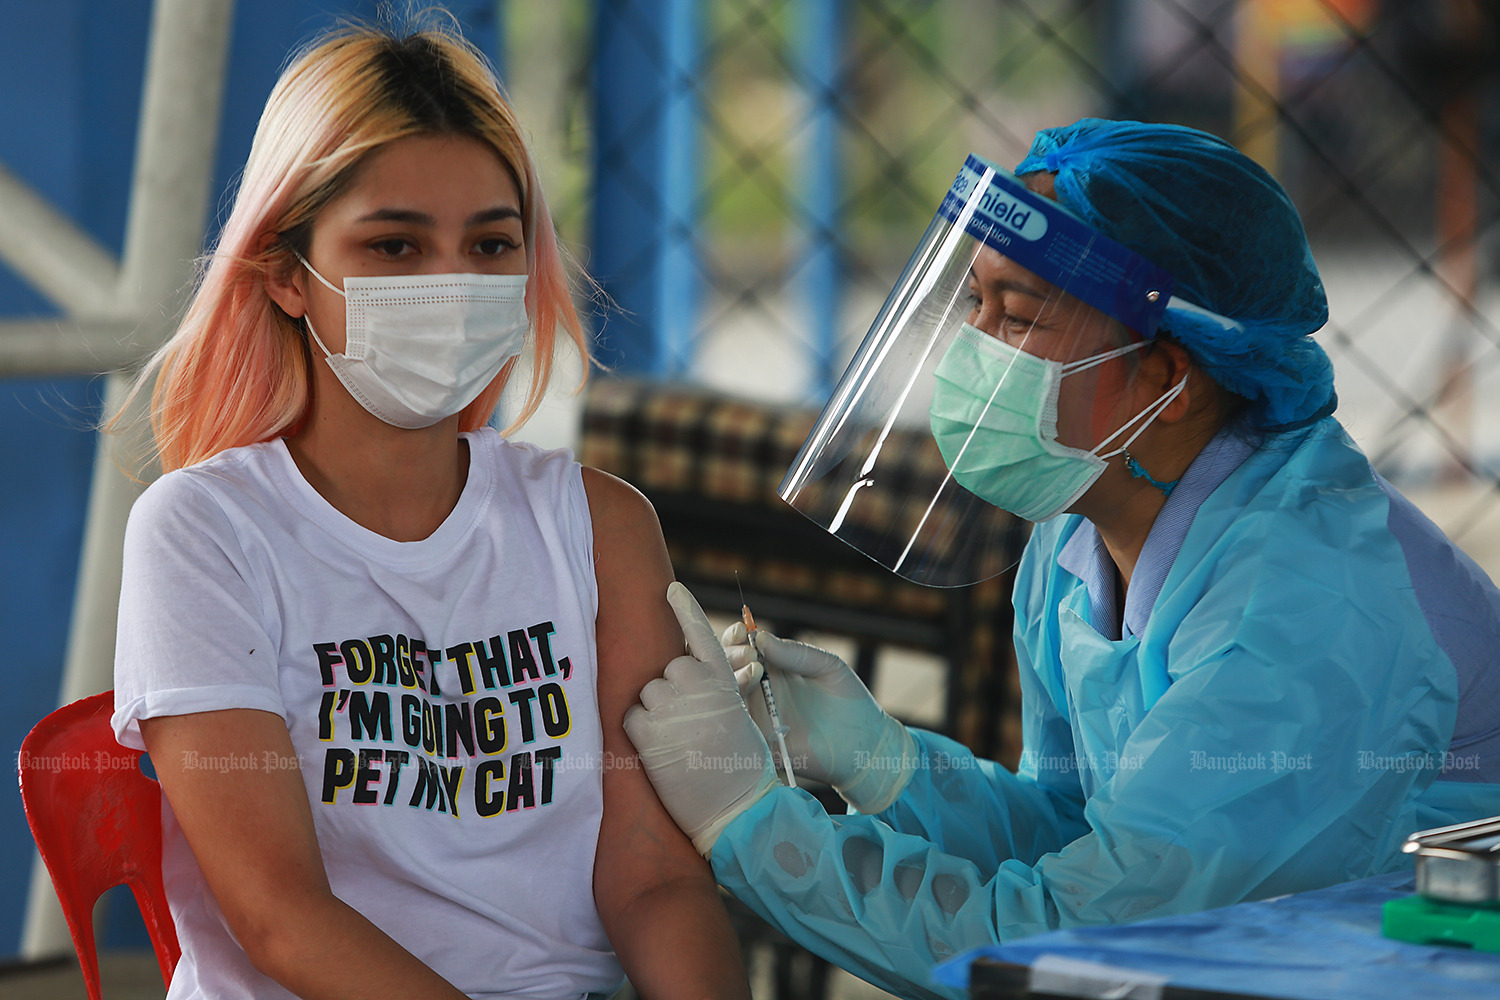 A resident of Watthana district in Bangkok is on April 7, 2021, injected with vaccine against Covid-19 at the Sang Thip sports complex on Soi Pridi Banomyong 2.(Photo by Somchai Poomlard)